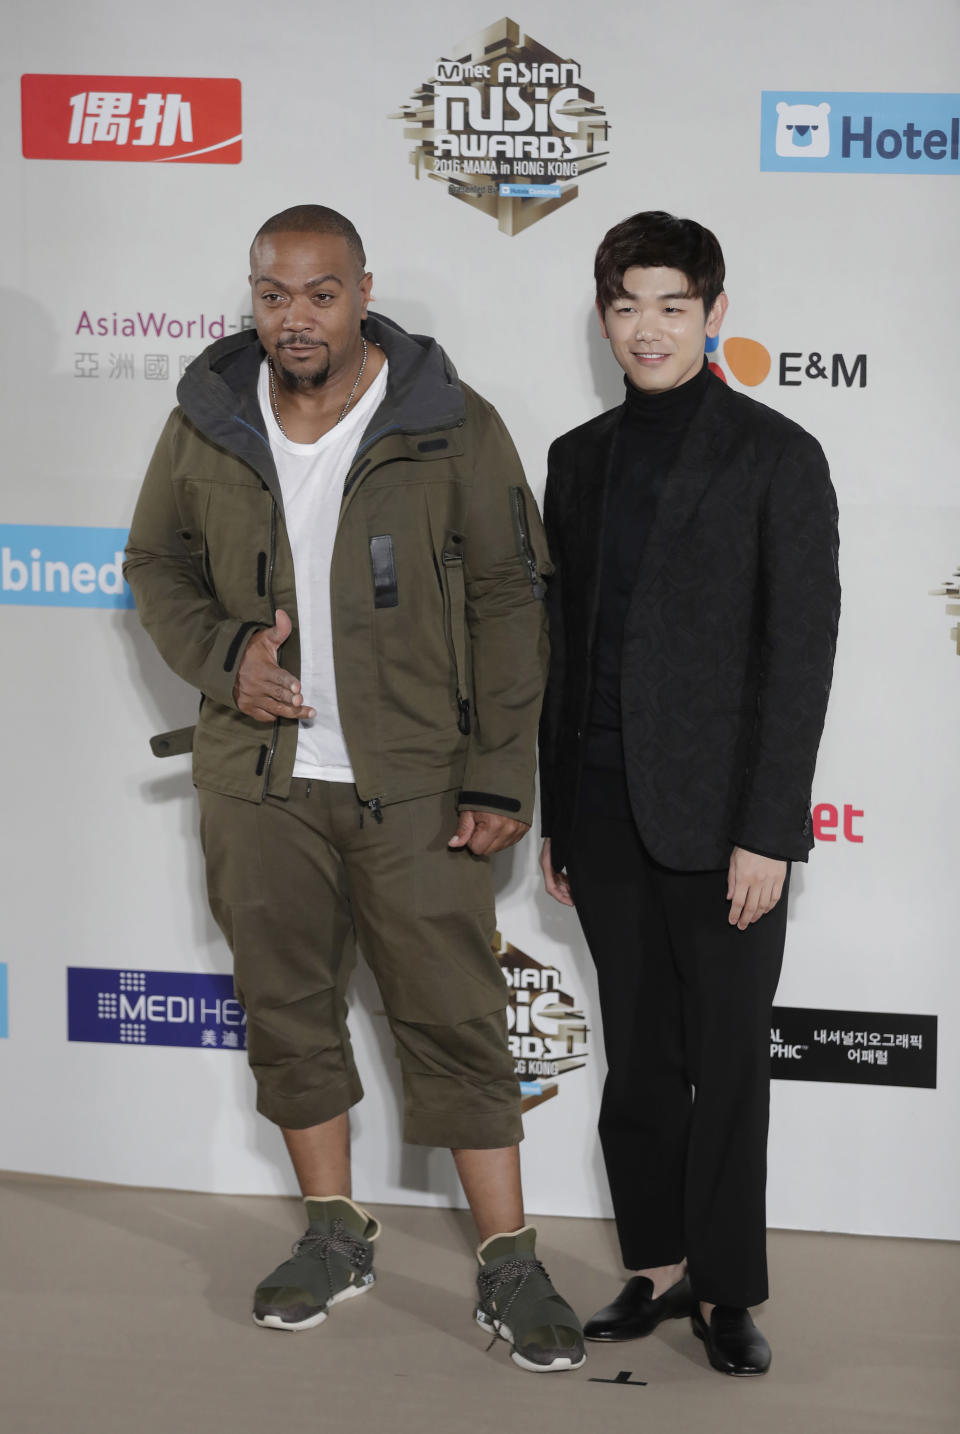 """FILE - In this Dec. 2, 2016 file photo, American musician Timothy Zachery """"Tim"""" Mosley, known professionally as Timbaland, left, and South Korean-American singer-songwriter Eric Nam, pose for the photographers on the red carpet of the 2016 Mnet Asian Music Awards (MAMA) in Hong Kong. Korean American K-pop singers, including Nam, are sharing their experiences with stress in a series of podcasts addressing mental health issues to raise awareness beyond the K-pop community. (AP Photo/Kin Cheung, File)"""